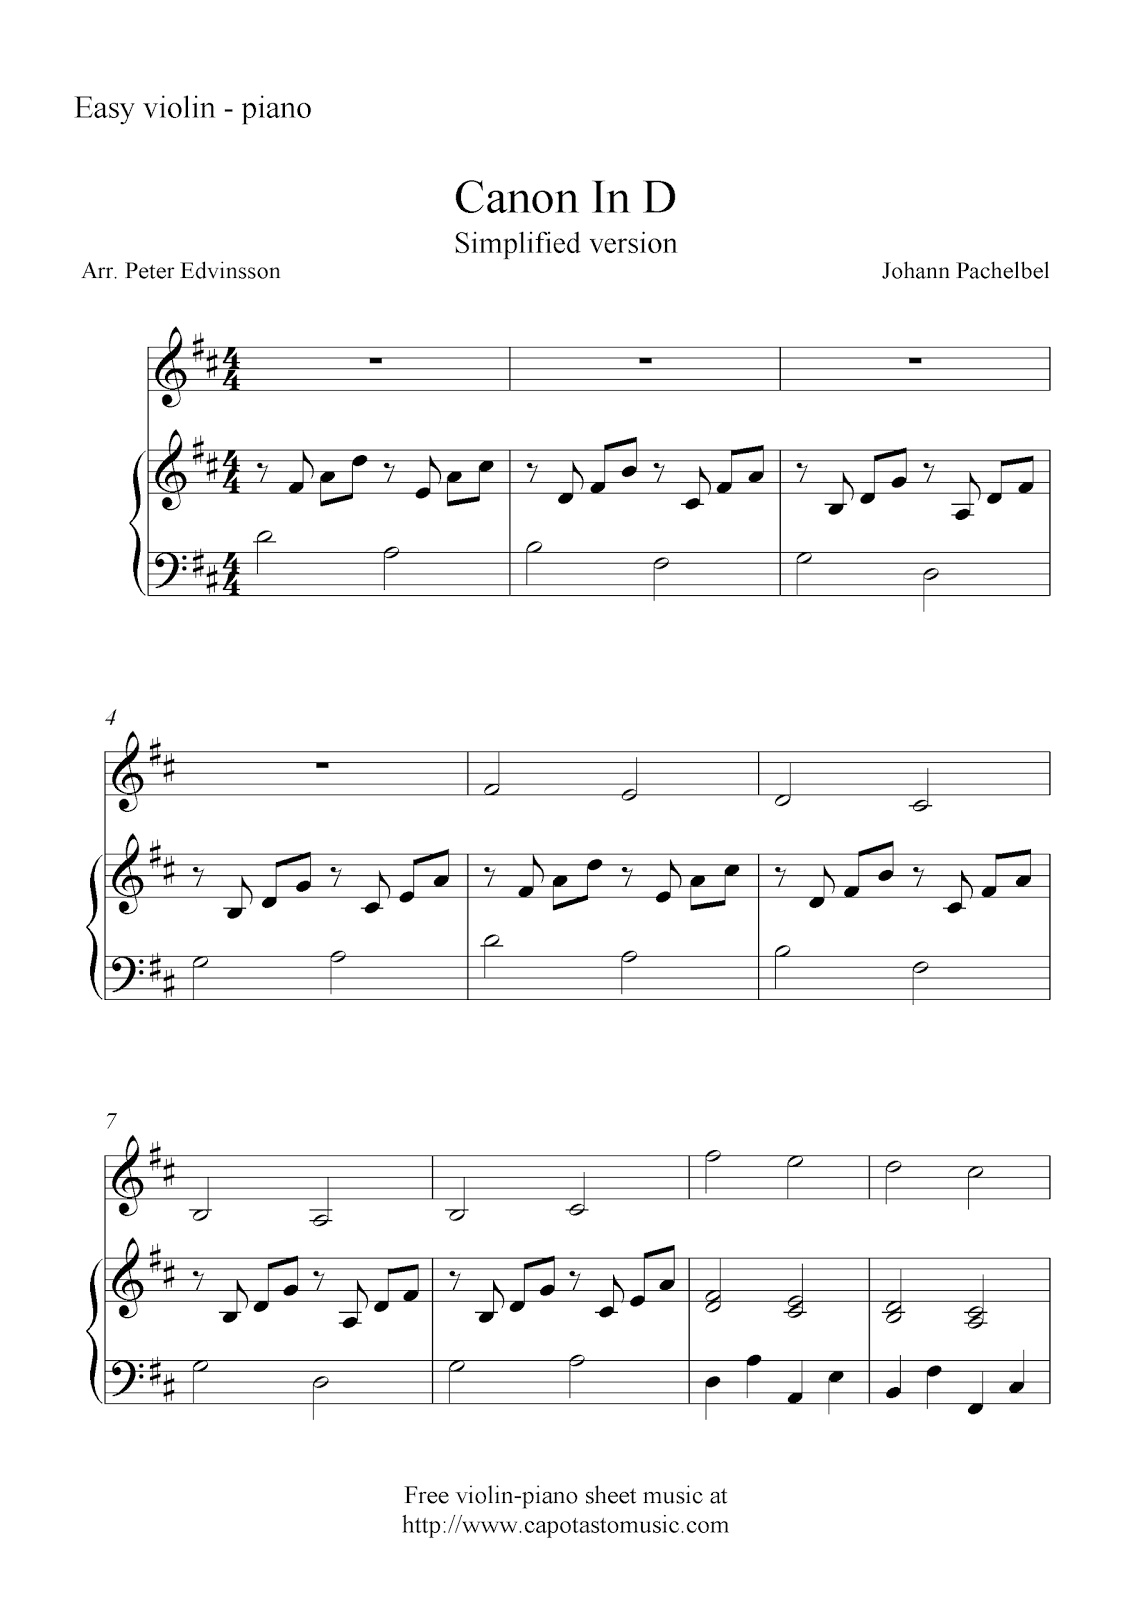 Canon In D (Simplified Version), Free Violin And Piano Sheet Music Notes - Canon In D Piano Sheet Music Free Printable